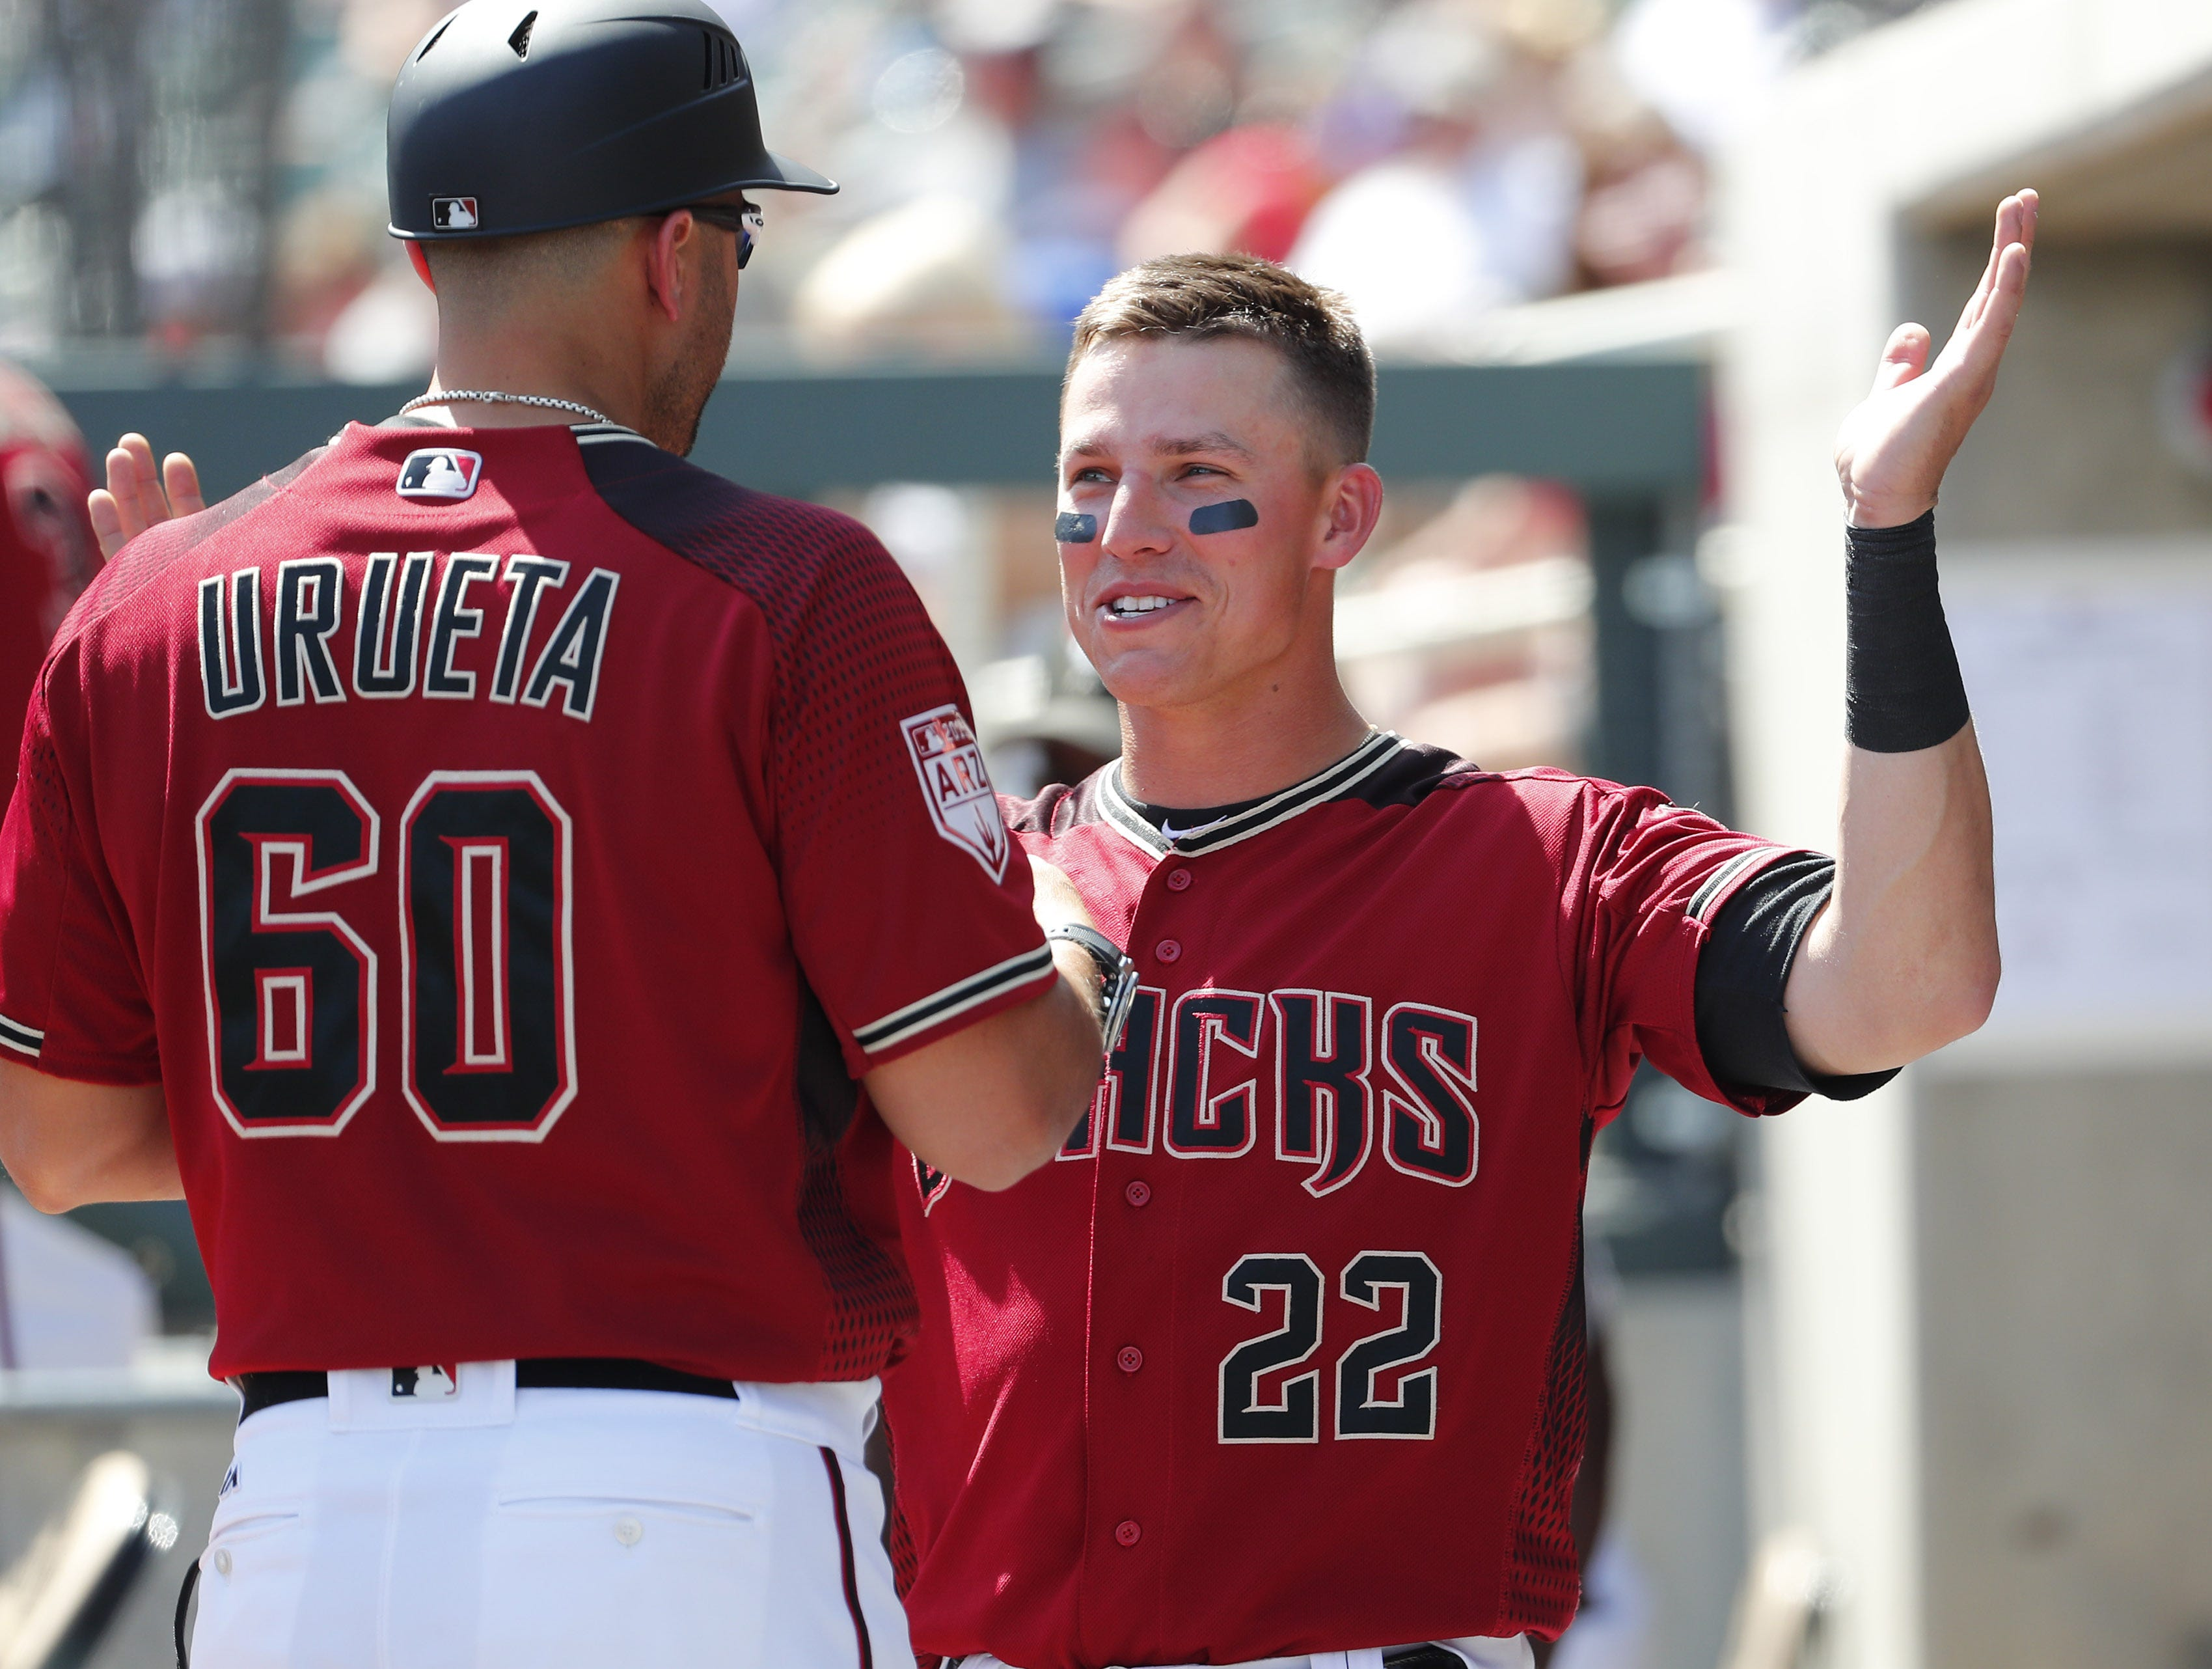 Arizona Diamondbacks first baseman Jake Lamb (22) talks with coach Luis Urueta (60) during a spring training game against the Milwaukee Brewers at Salt River Fields at Talking Stick March 24, 2019.